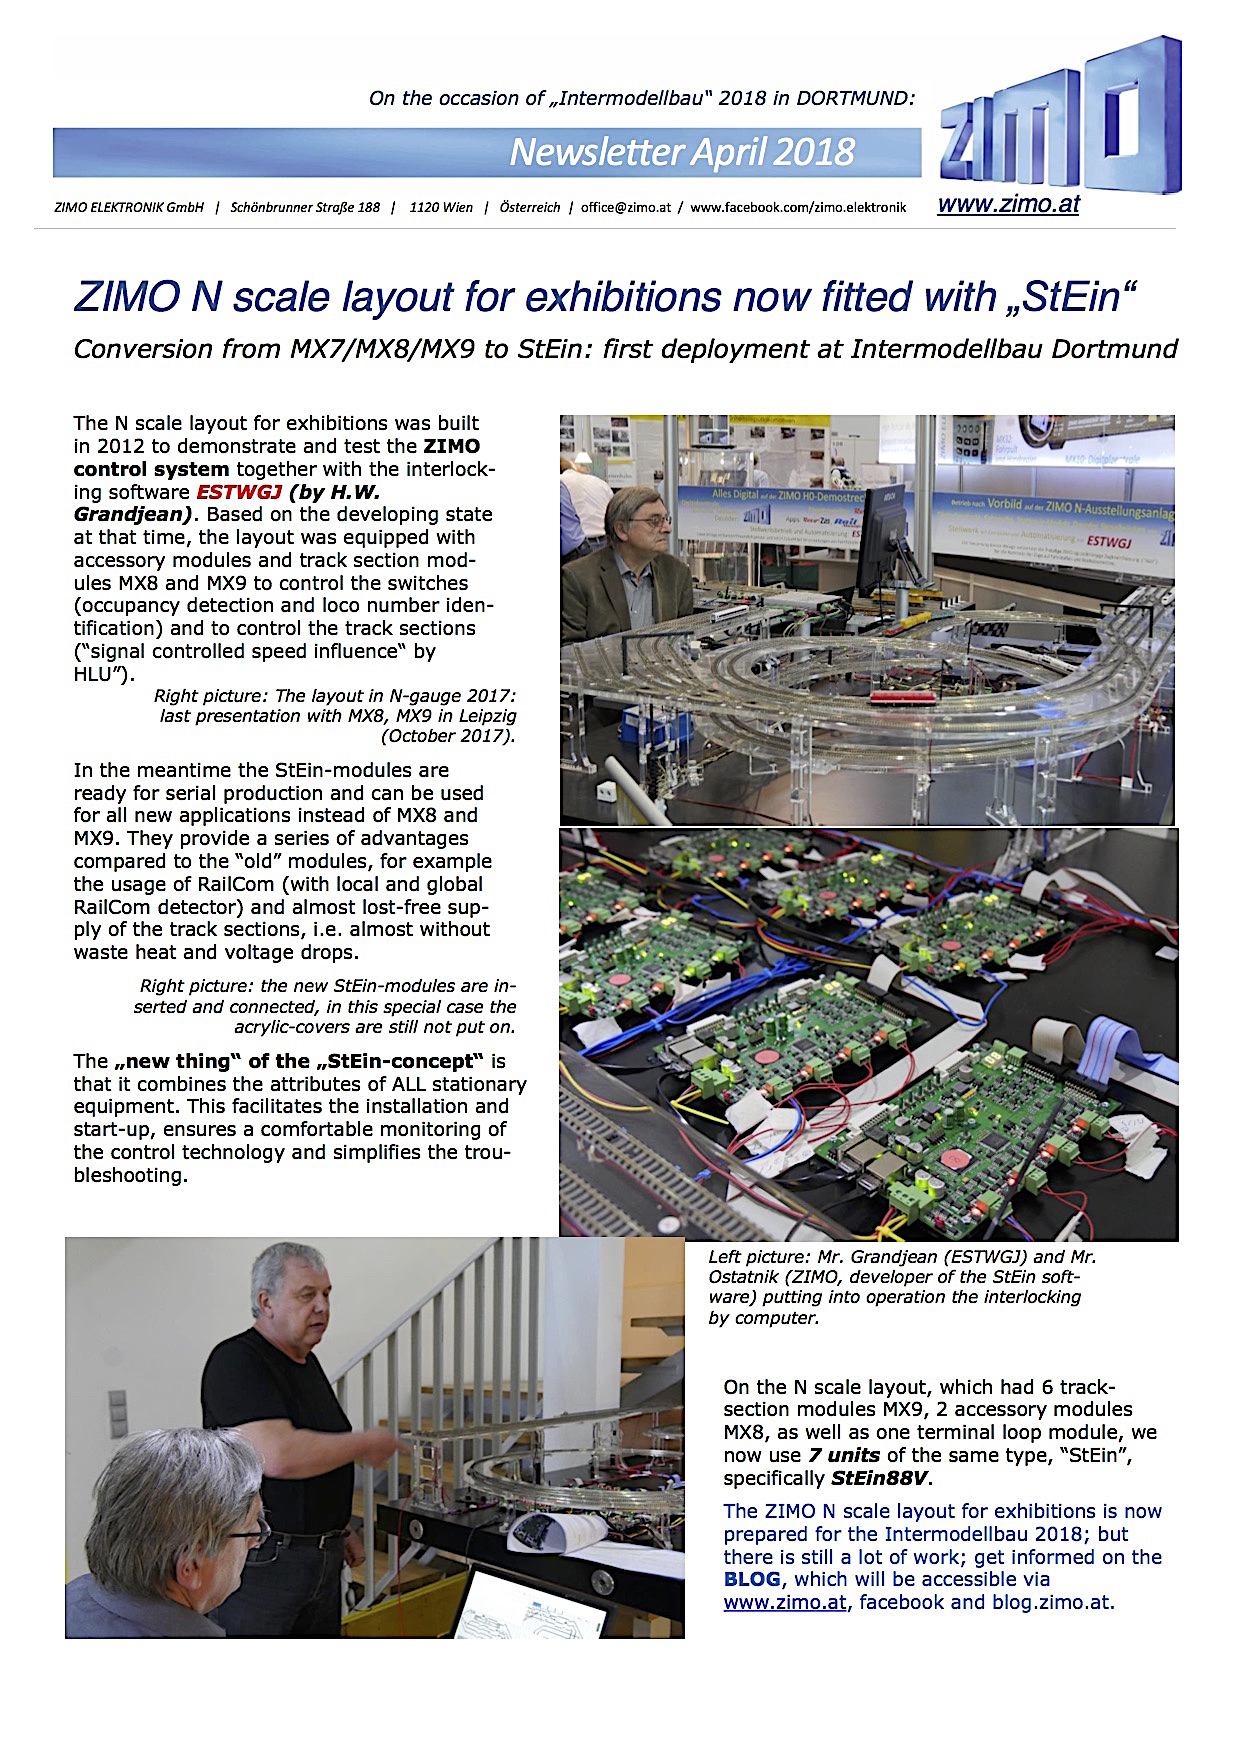 Zimo Newsletter - 2018-04 April (English)